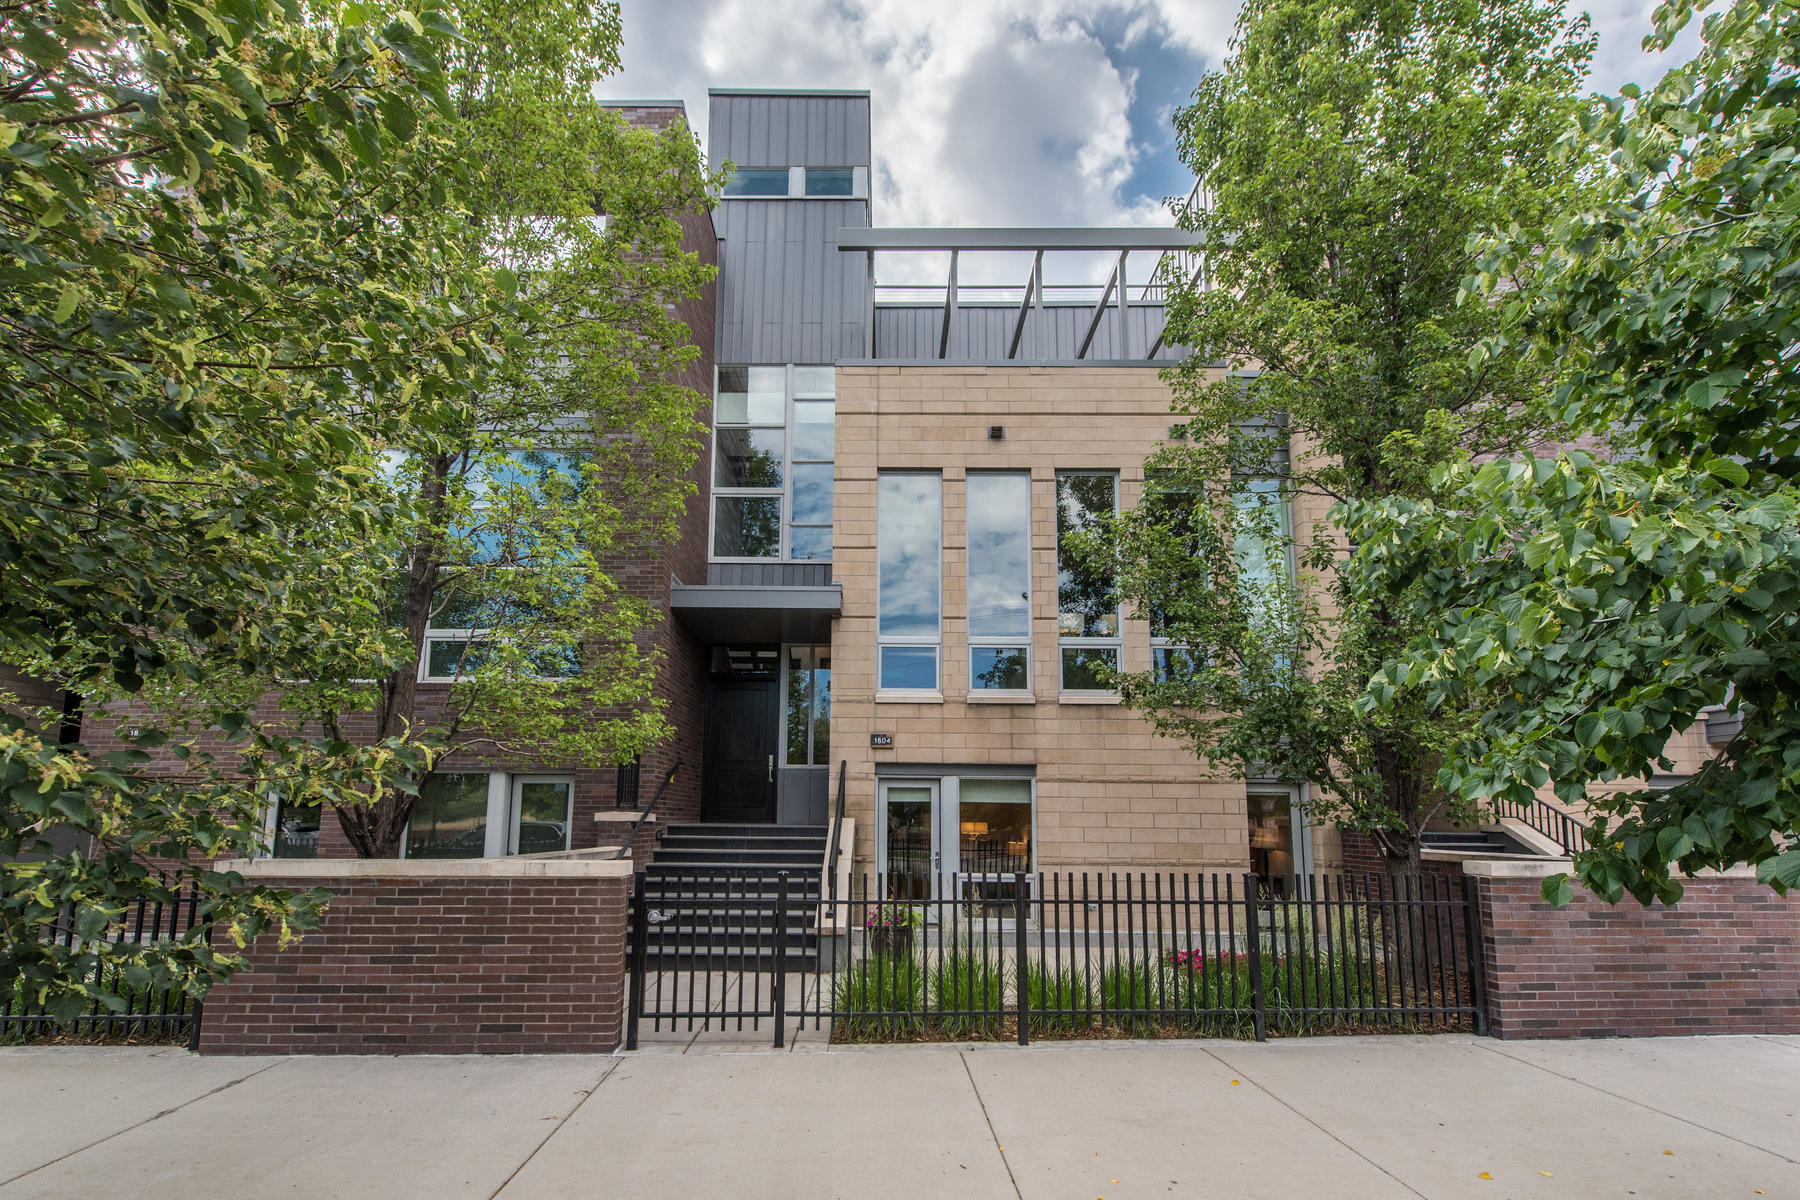 Casa Unifamiliar por un Venta en Stunning Brownstone in Riverfront 1804 Little Raven St Denver, Colorado 80202 Estados Unidos